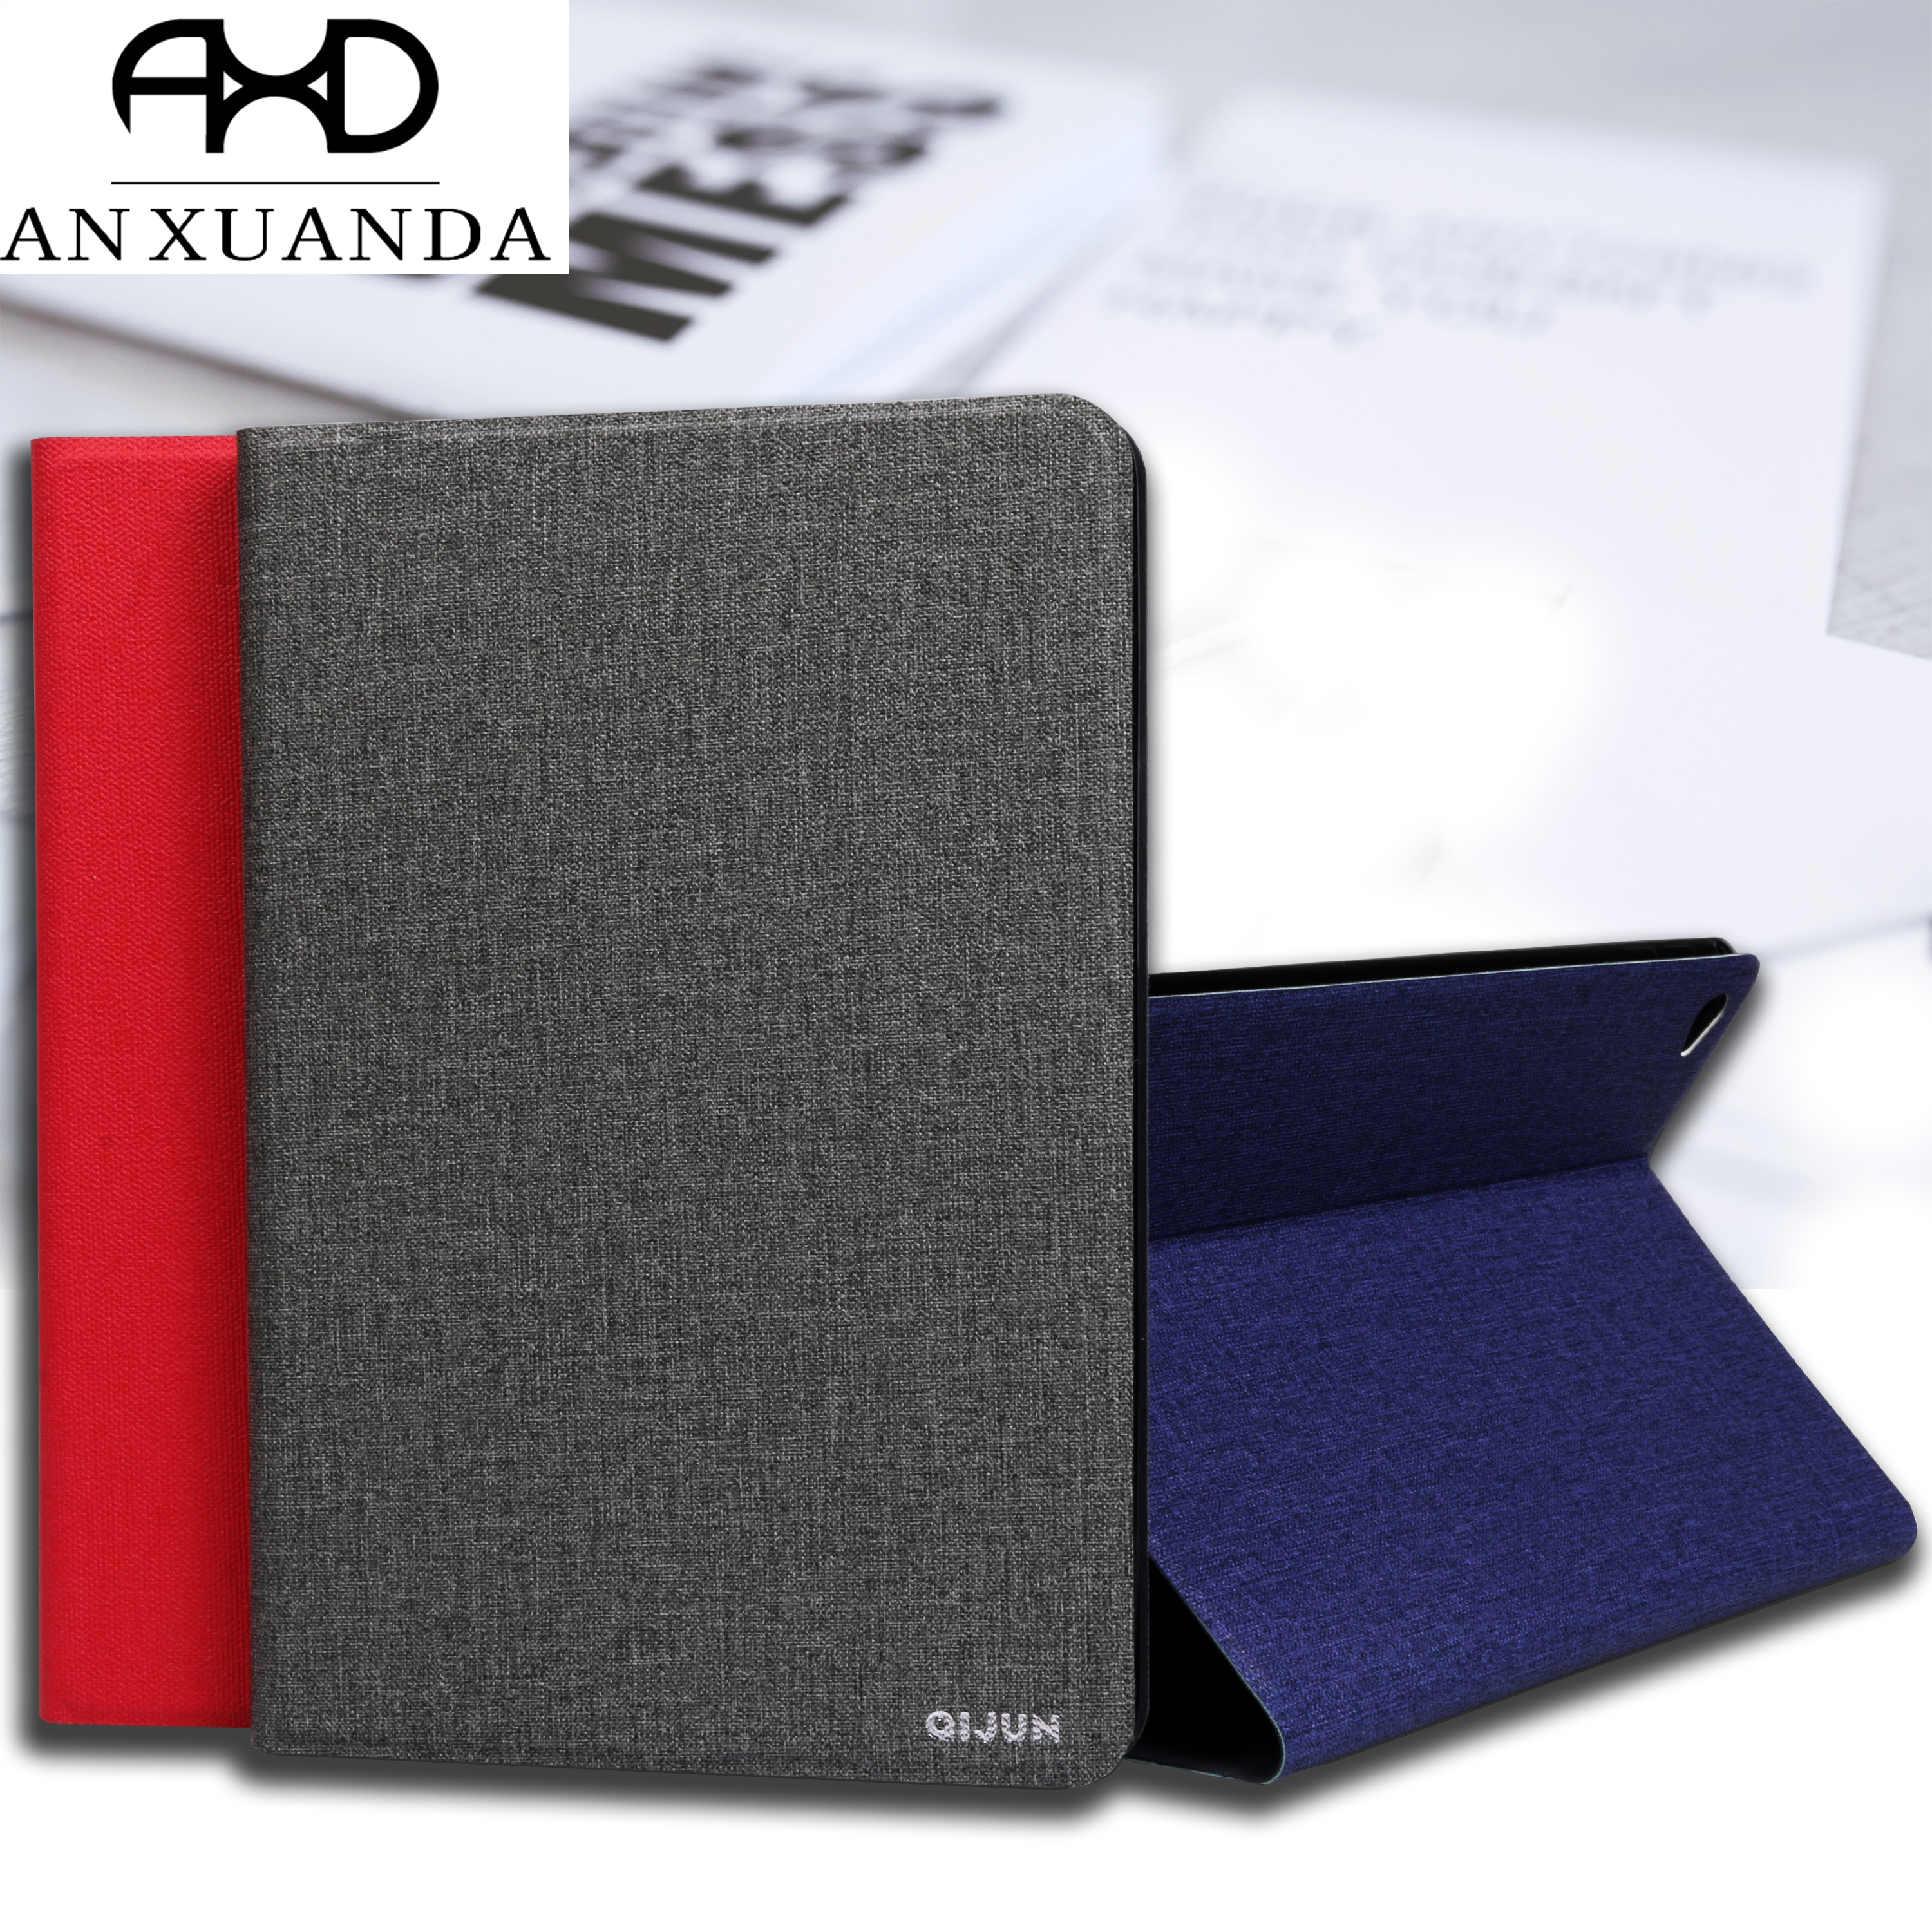 For <font><b>Samsung</b></font> Galaxy Tab A 8.0 inch 2019 QIJUN Case for galaxy Tab A 8.0 SM-P200 <font><b>P205</b></font> 8.0